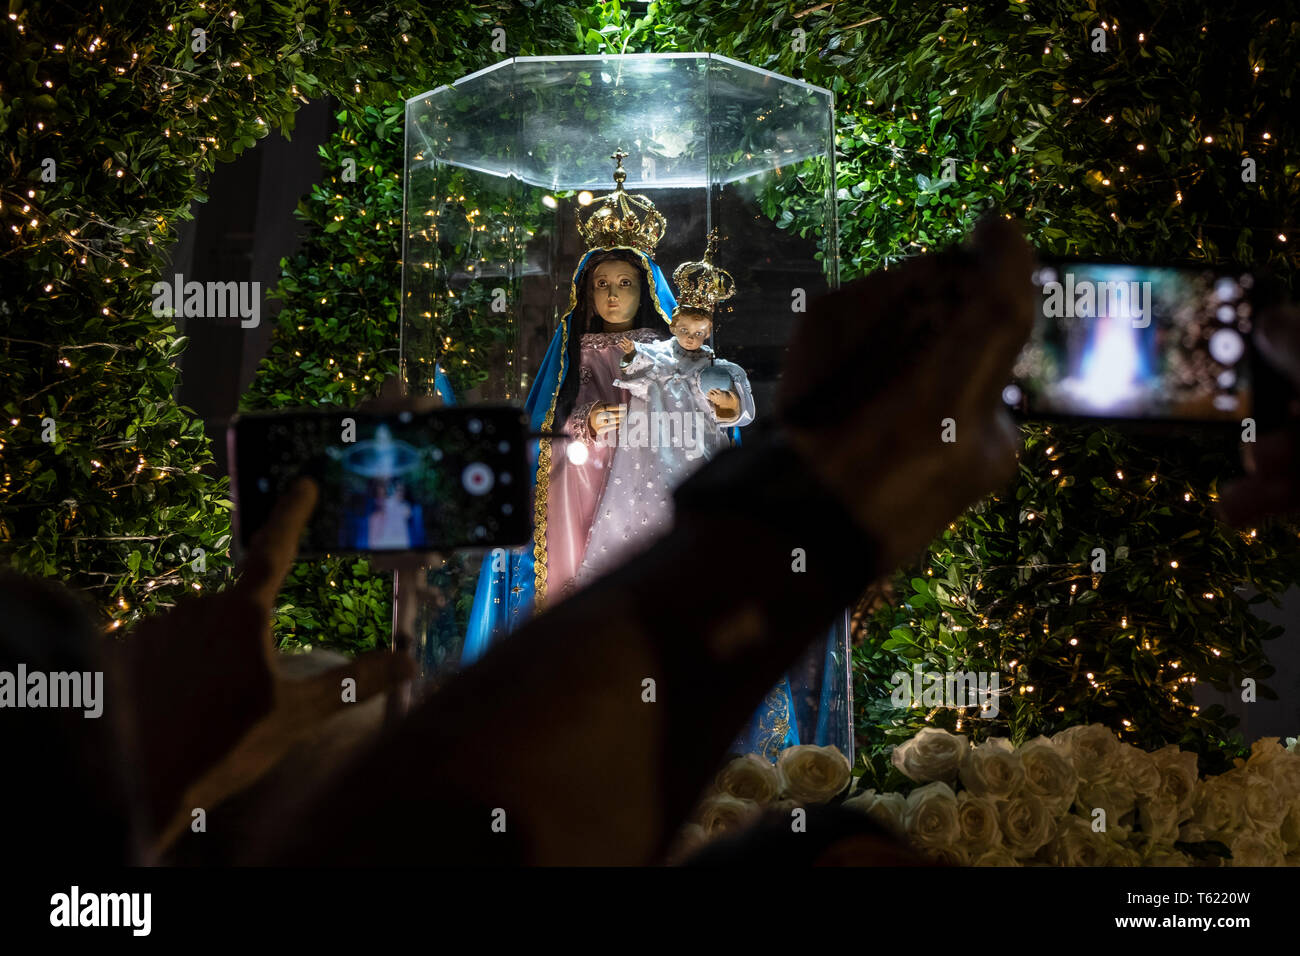 dpatop - 27 April 2019, Brazil, Vitória do Espírito Santo: Believers film the figure of the Virgin Nuestra Señora de la Penha before the pilgrimage in the city of Vitória do Espírito Santo in southeast Brazil. The 'Romería de los hombres' (men's pilgrimage) is a pilgrimage of Catholic believers that has been celebrated every year since 1958. The pilgrimage is considered one of the three largest in Brazil. According to the Catholic Church, about 700,000 people attended the event this year. Photo: Diego Herculano/dpa - Stock Image